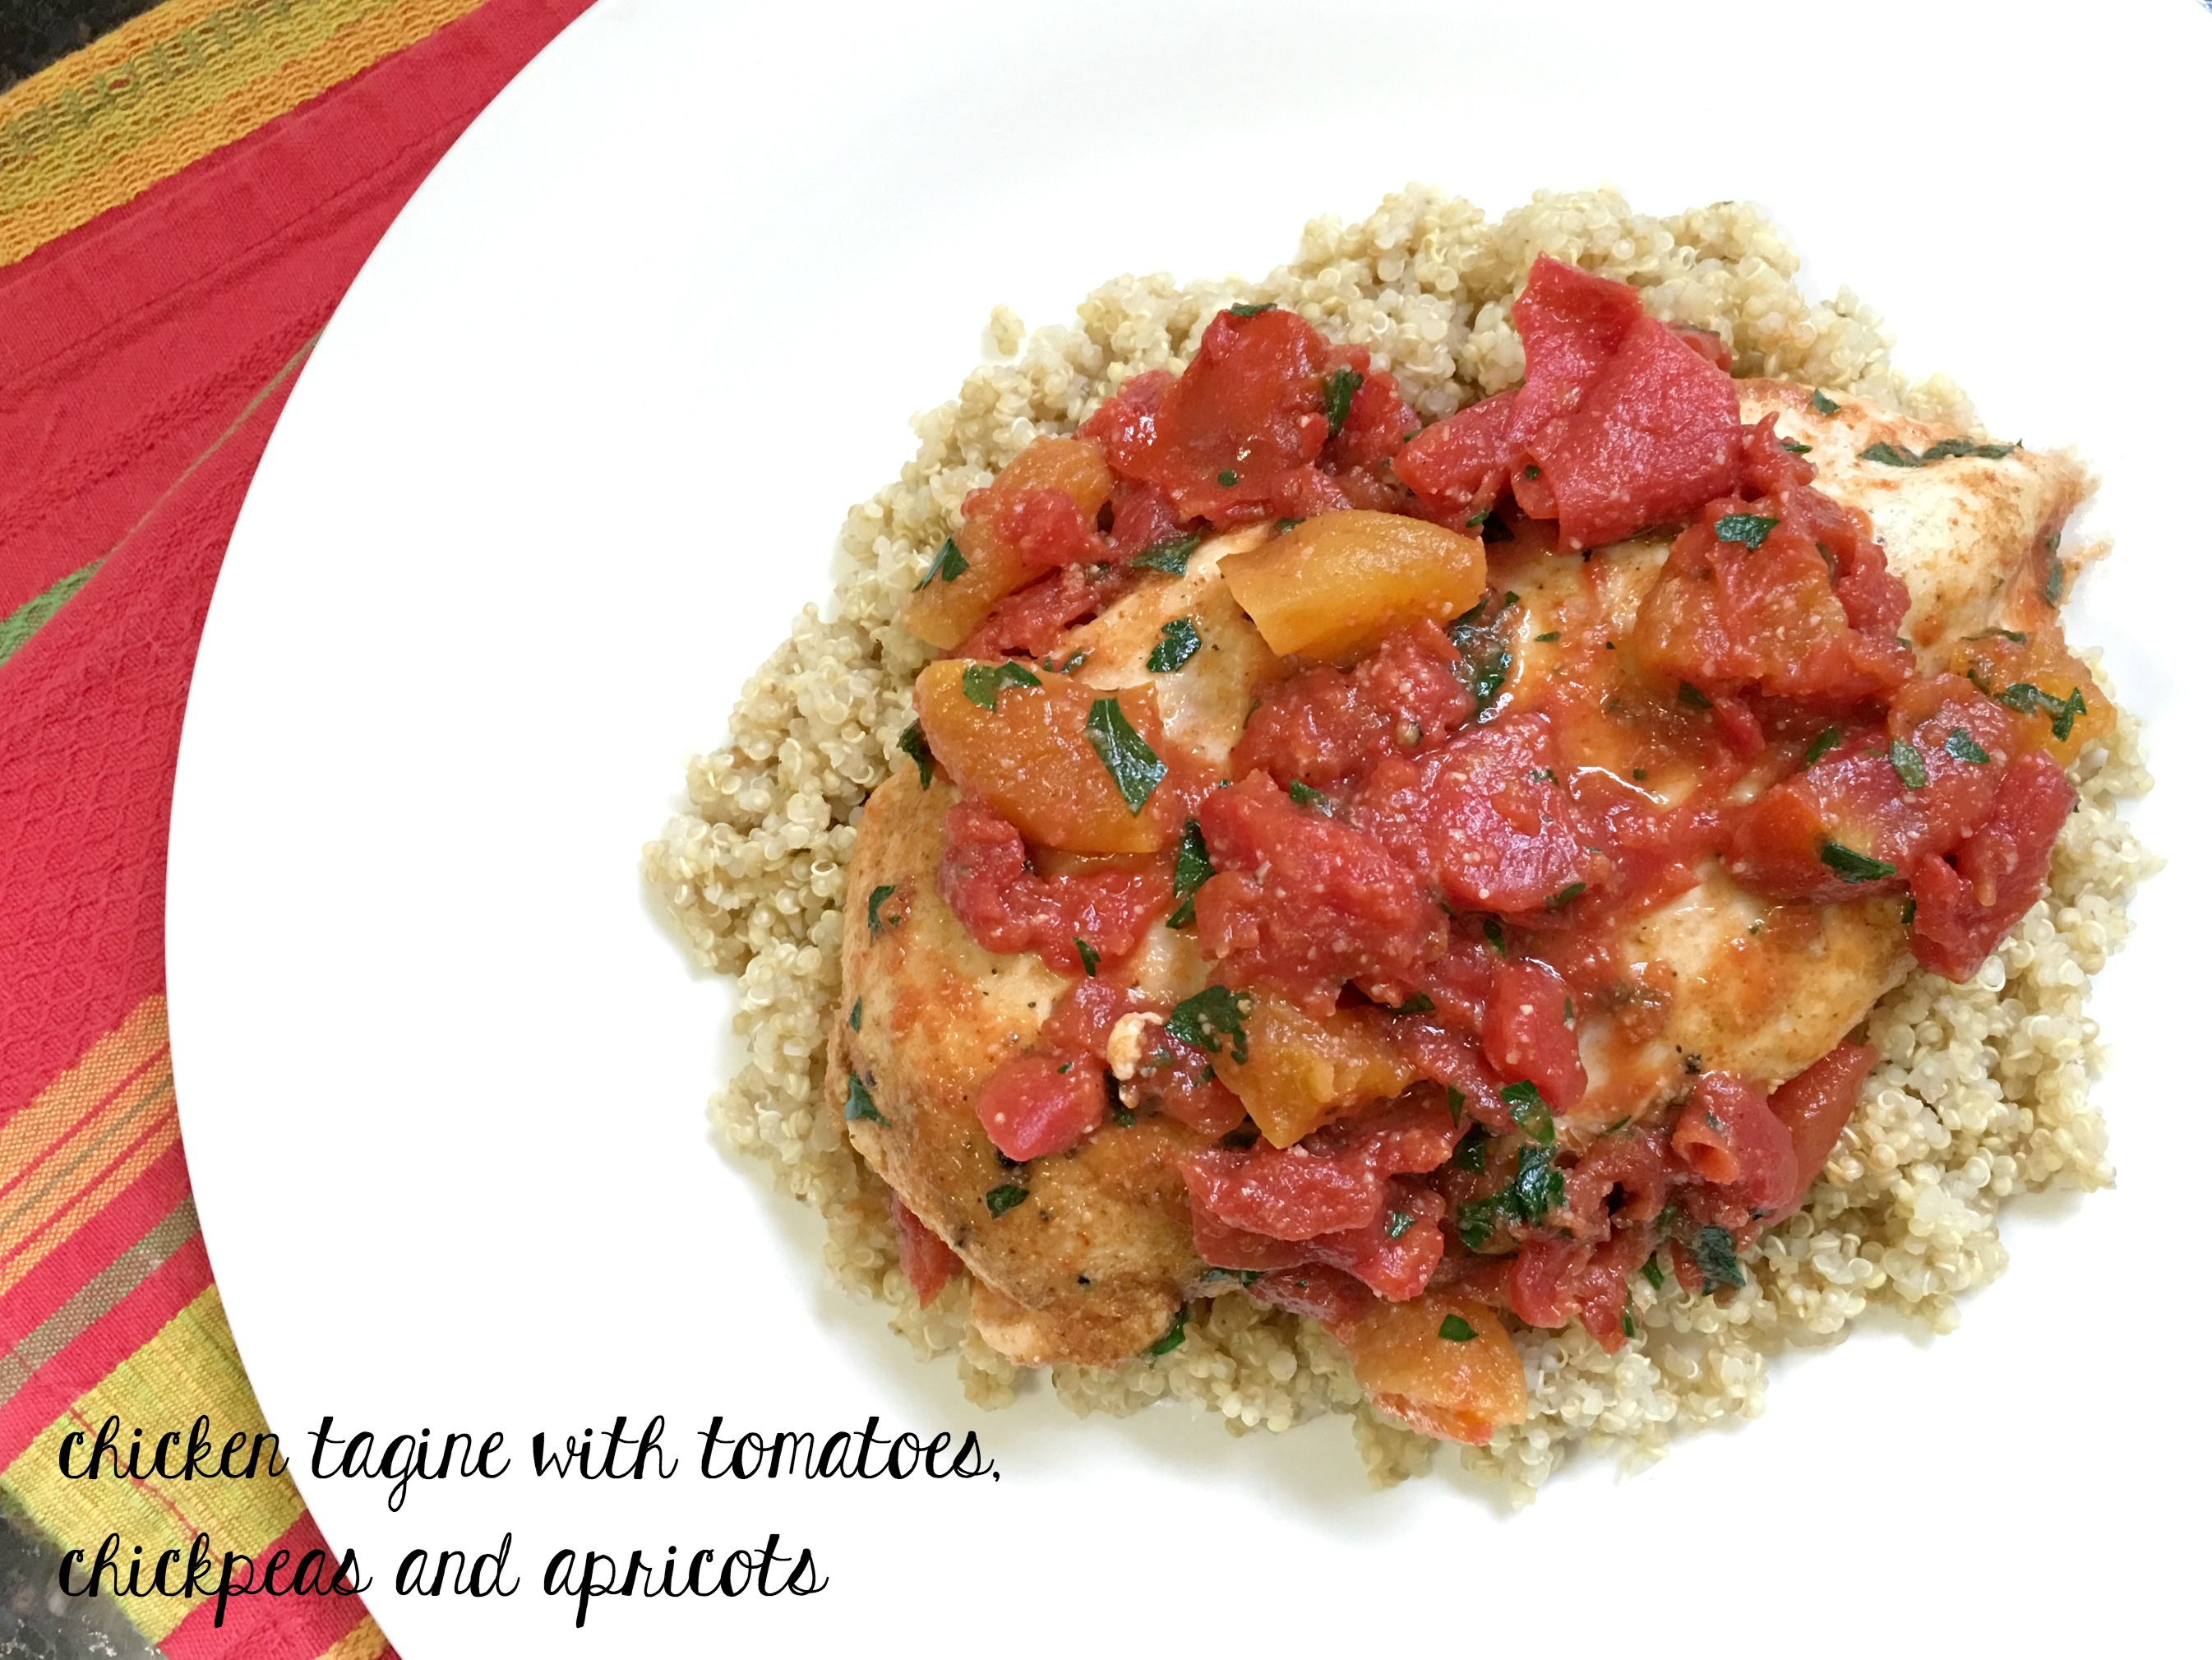 chicken tagine with tomatoes, chickpeas, and apricots - PlateJoy